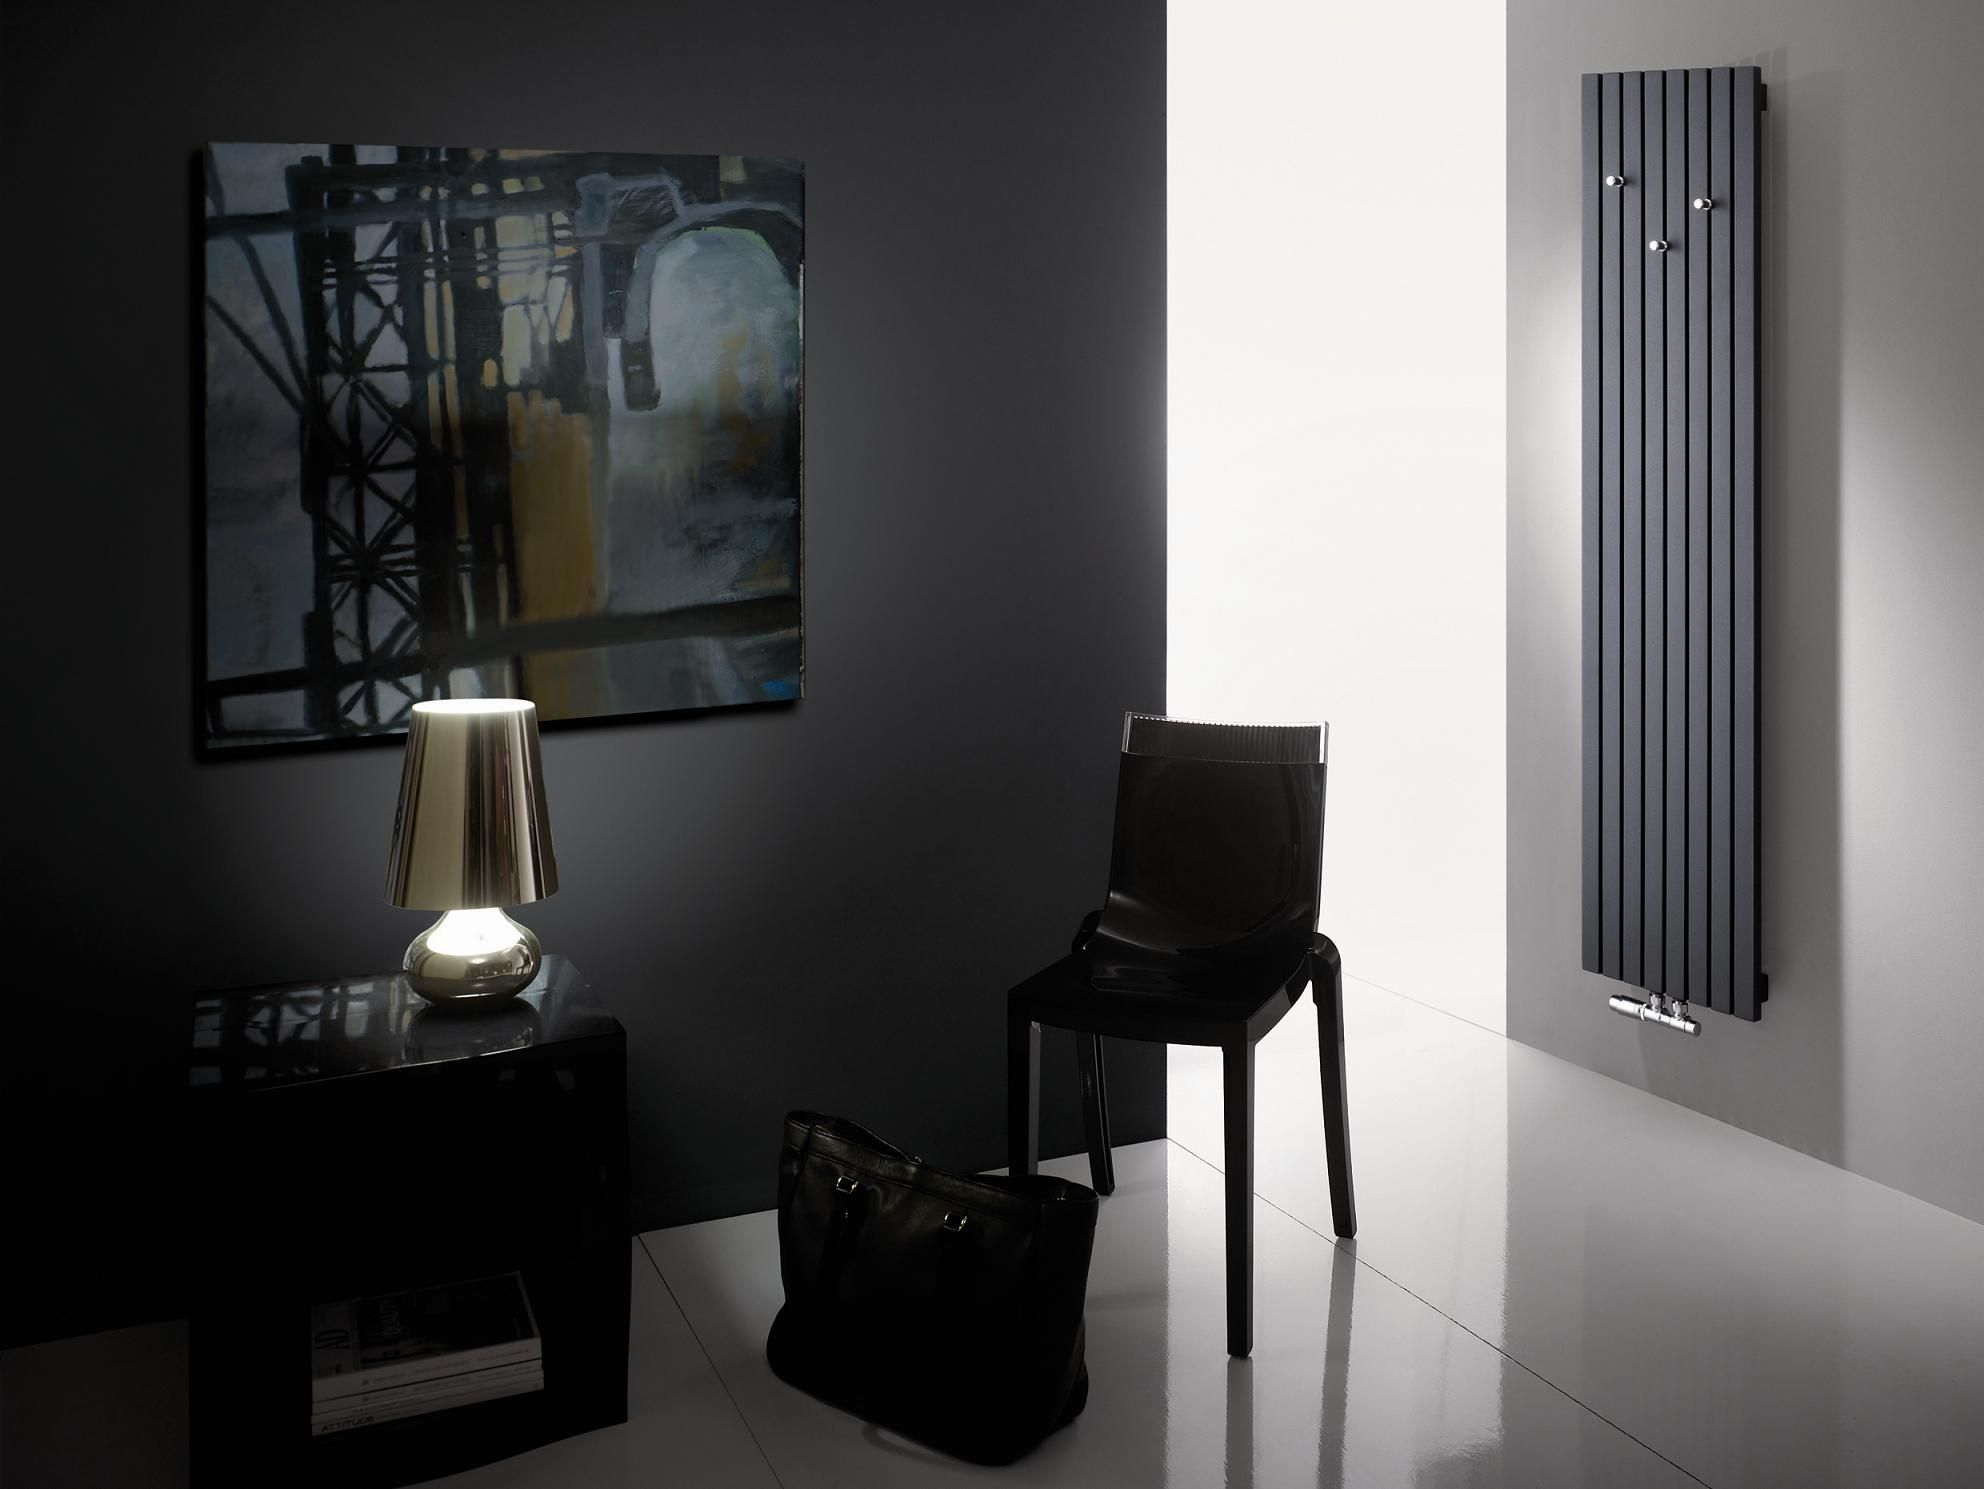 Designer Heizung Wohnzimmer Radiator Santos Classy Black Color With Some White Elements Will